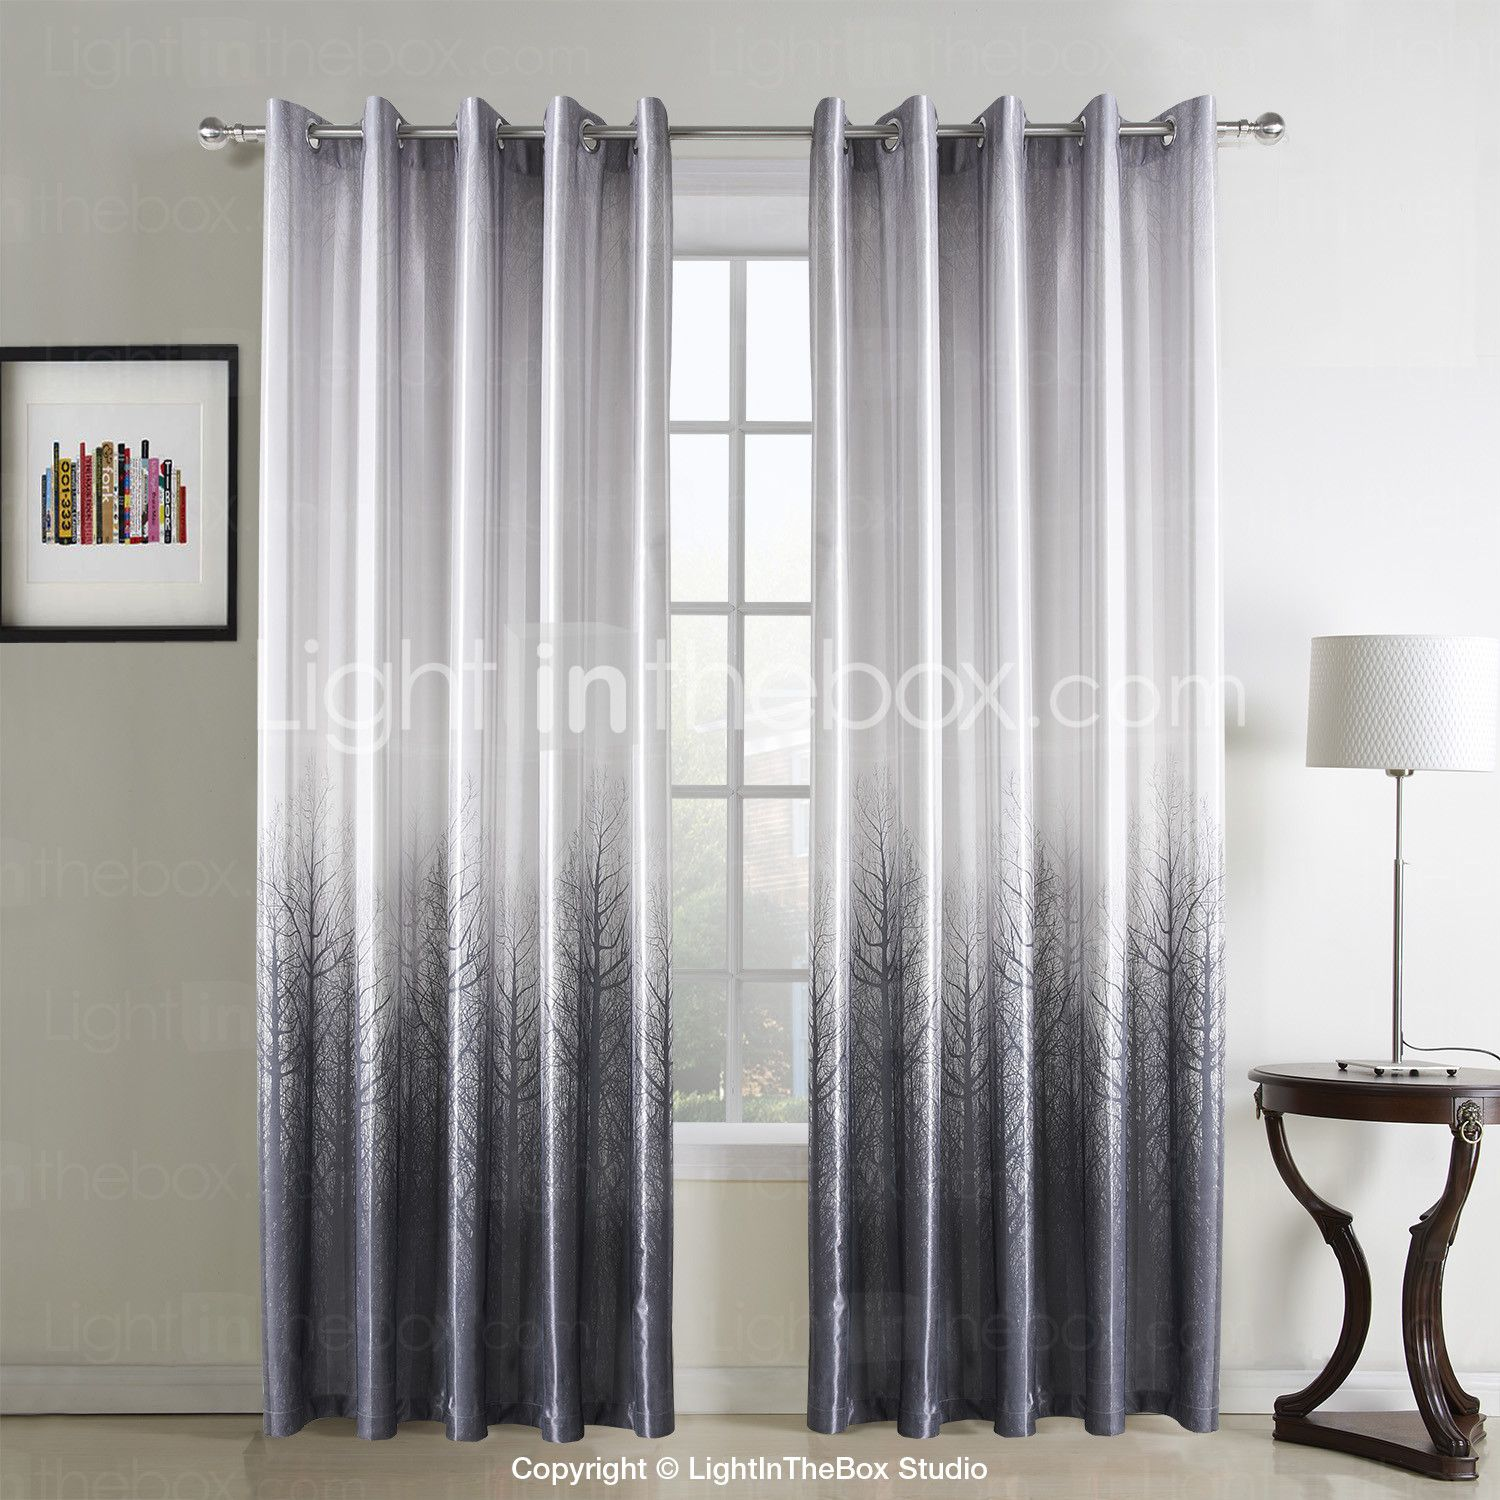 Two panels curtain country living room polyester material curtains